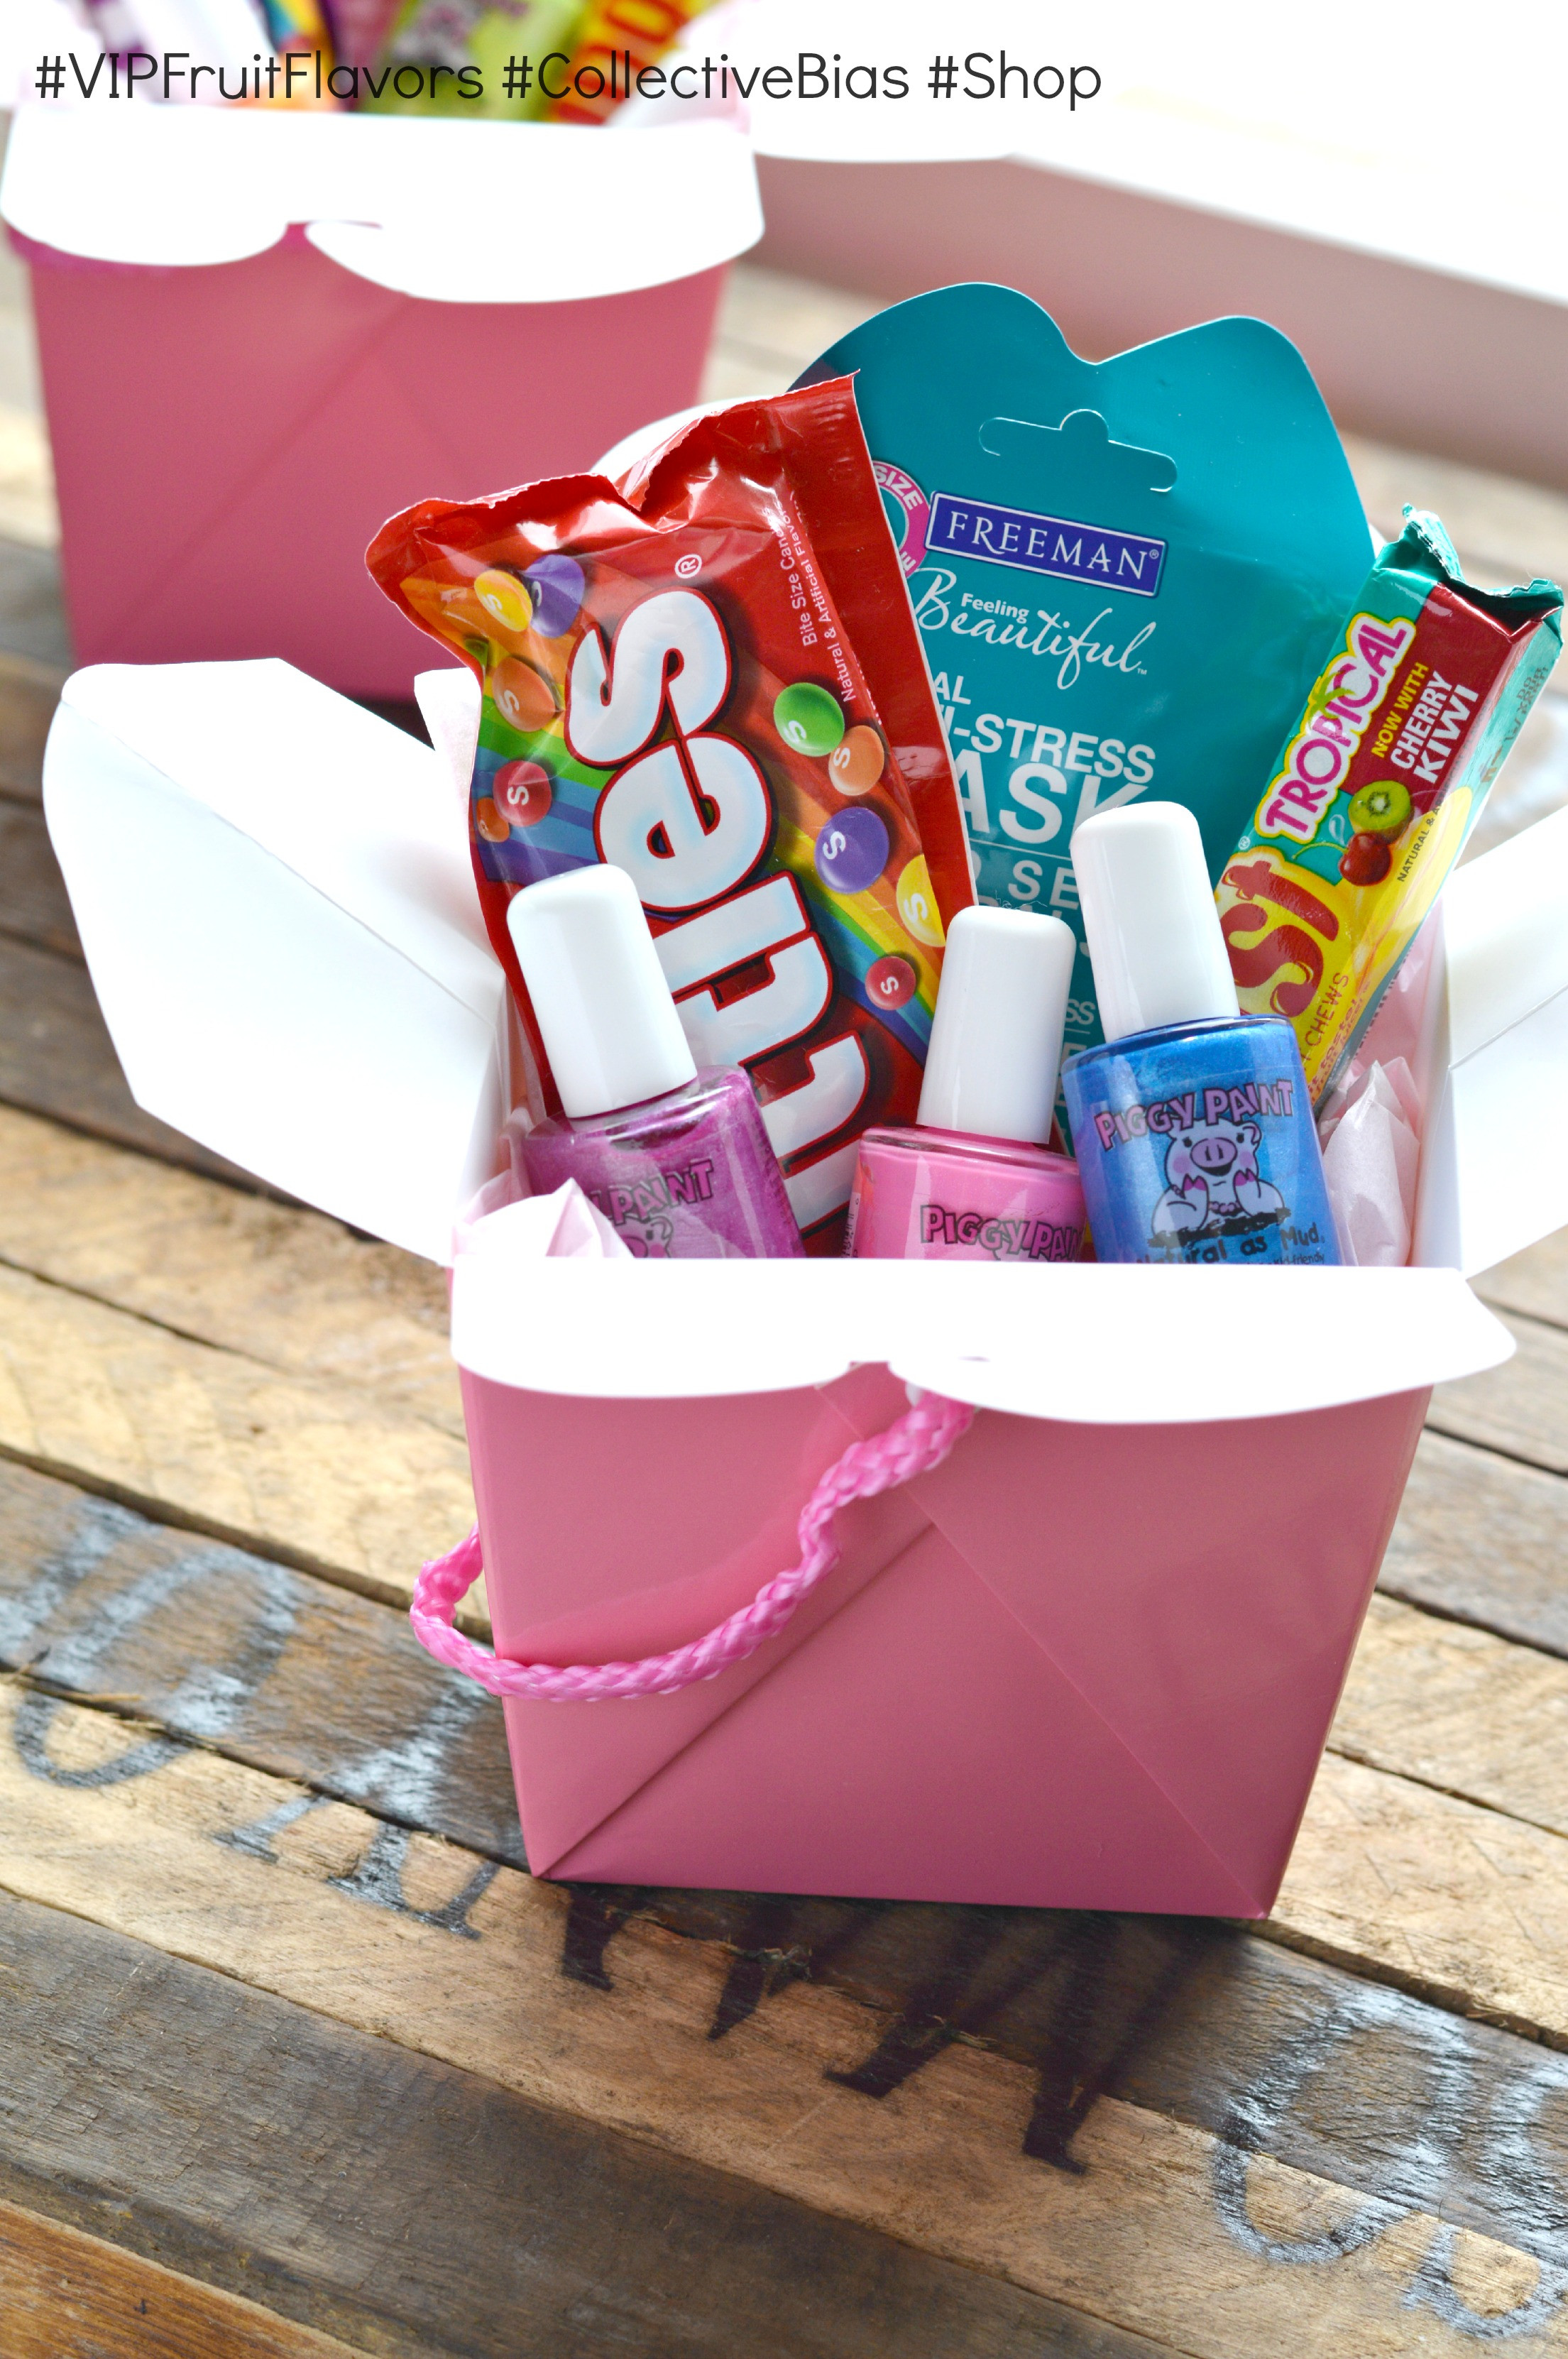 Diy Gift Ideas For Girls  Skittles & Starburst Make For Awesome DIY Gifts It s